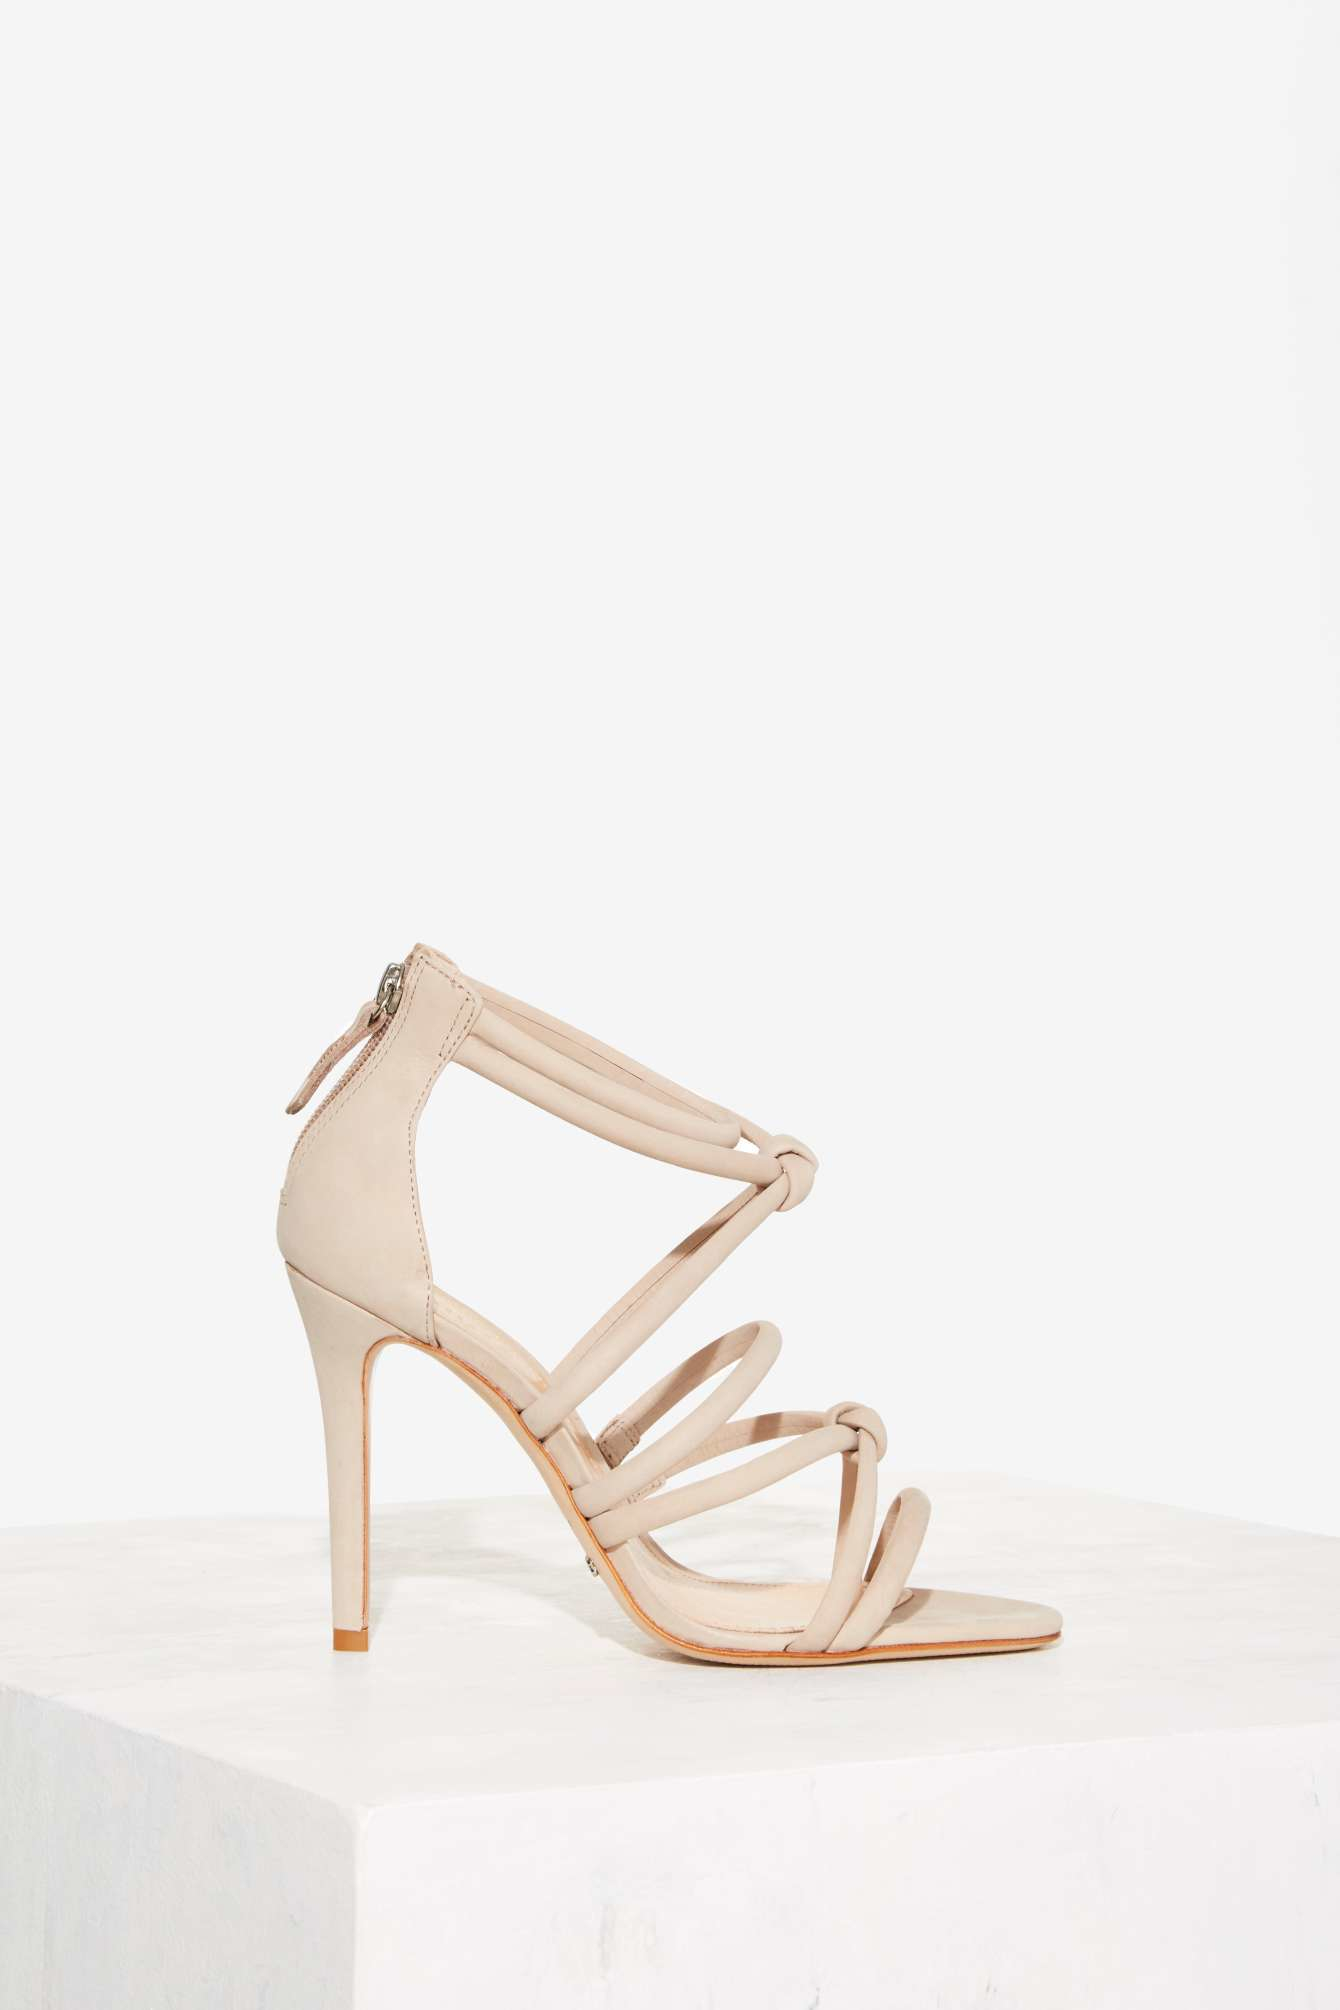 880e37a9b692c Lyst - Schutz Mindy Strappy Suede Heel - Nude in Natural